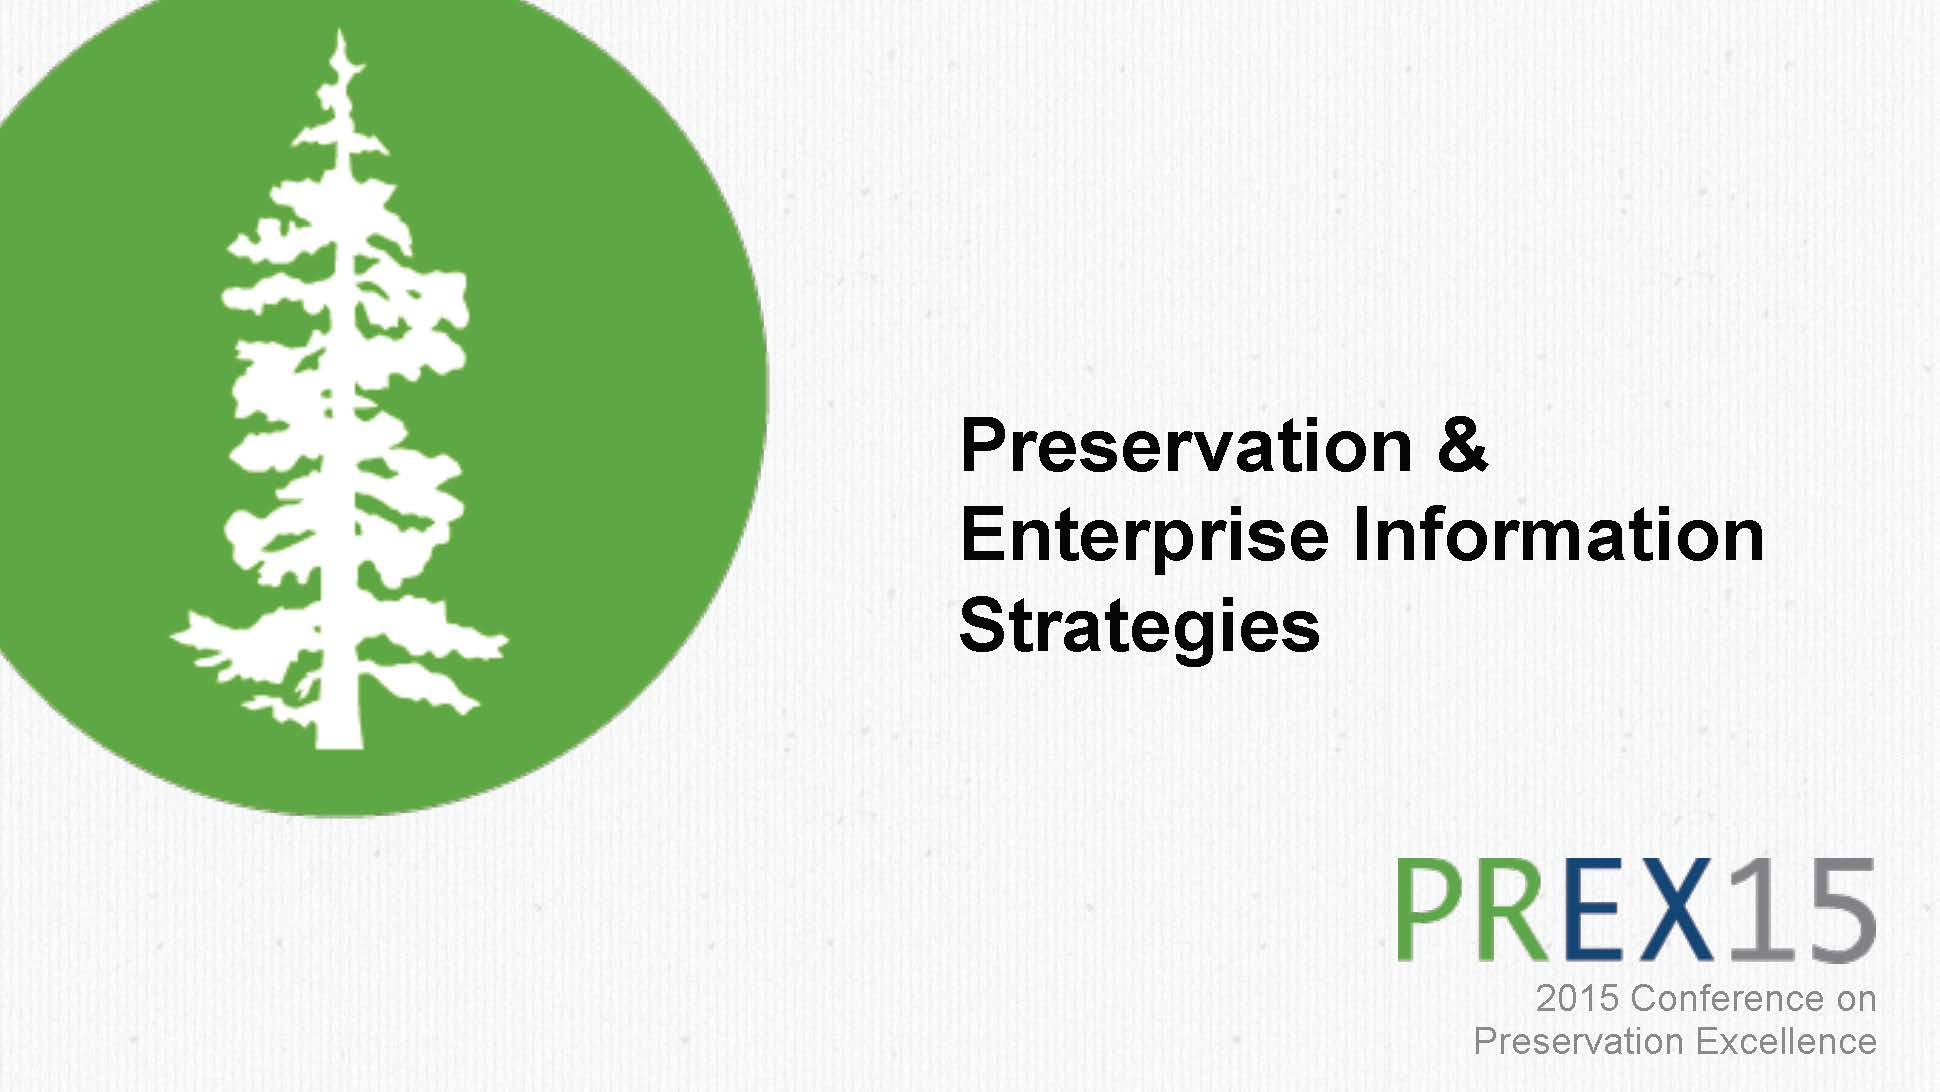 Preservation and Enterprise Information Strategies